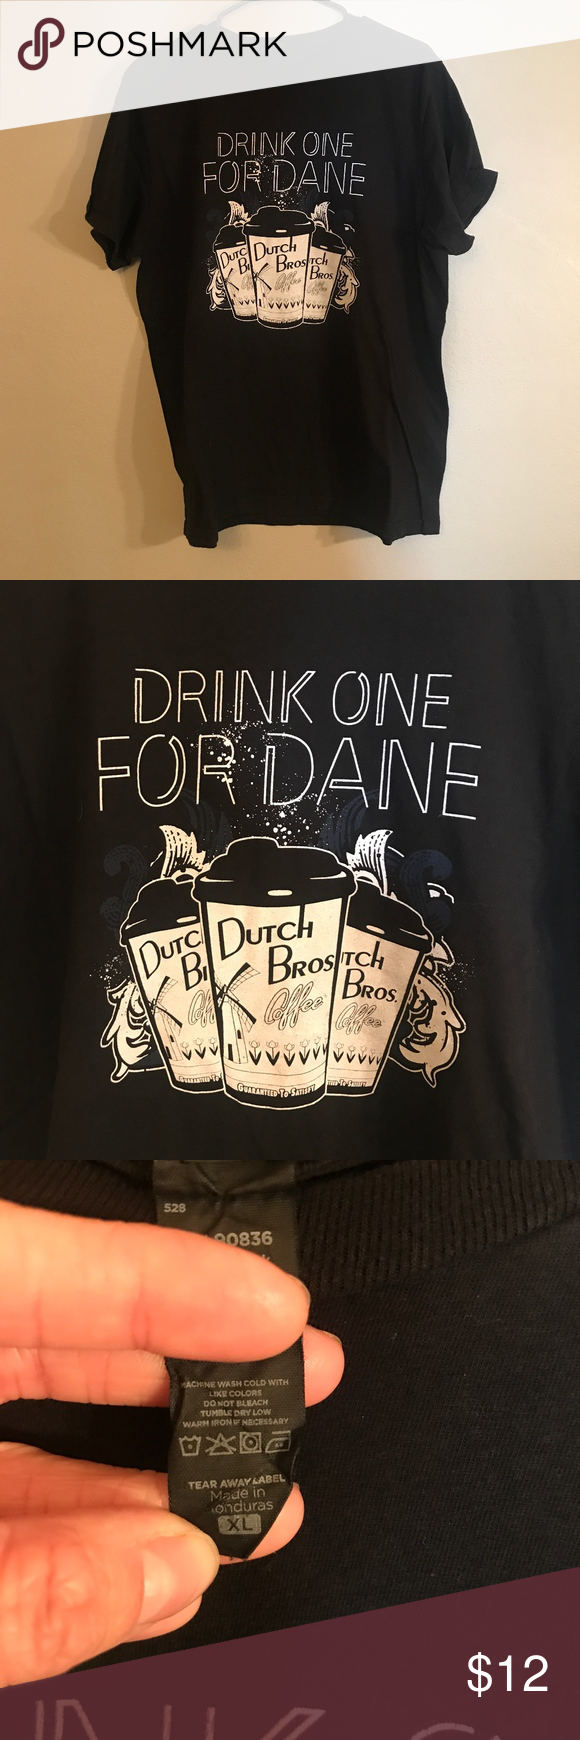 Dutch Bros Drink One For Dane Tee Great condition. Dutch Bros Tops Tees - Short Sleeve #dutchbros Dutch Bros Drink One For Dane Tee Great condition. Dutch Bros Tops Tees - Short Sleeve #kidsmessyhats